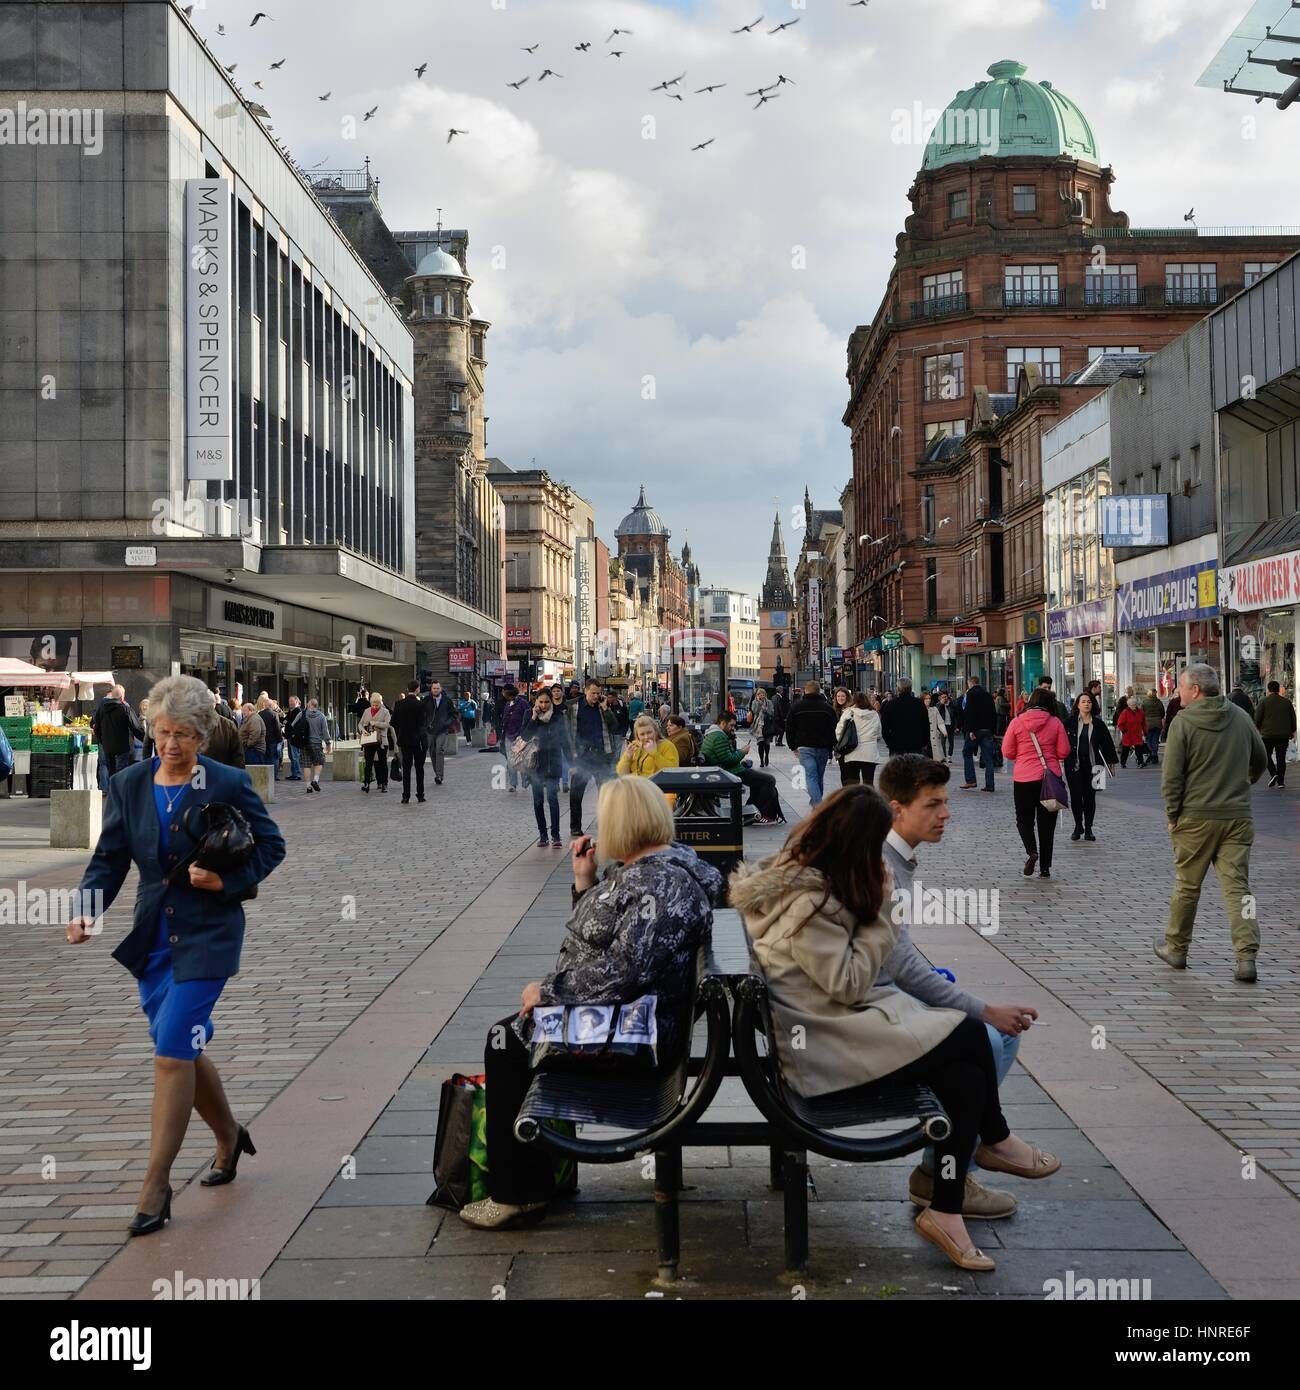 Looking east on a busy Argyle Street pedestrian precinct in Glasgow city centre, Scotland, UK - Stock Image